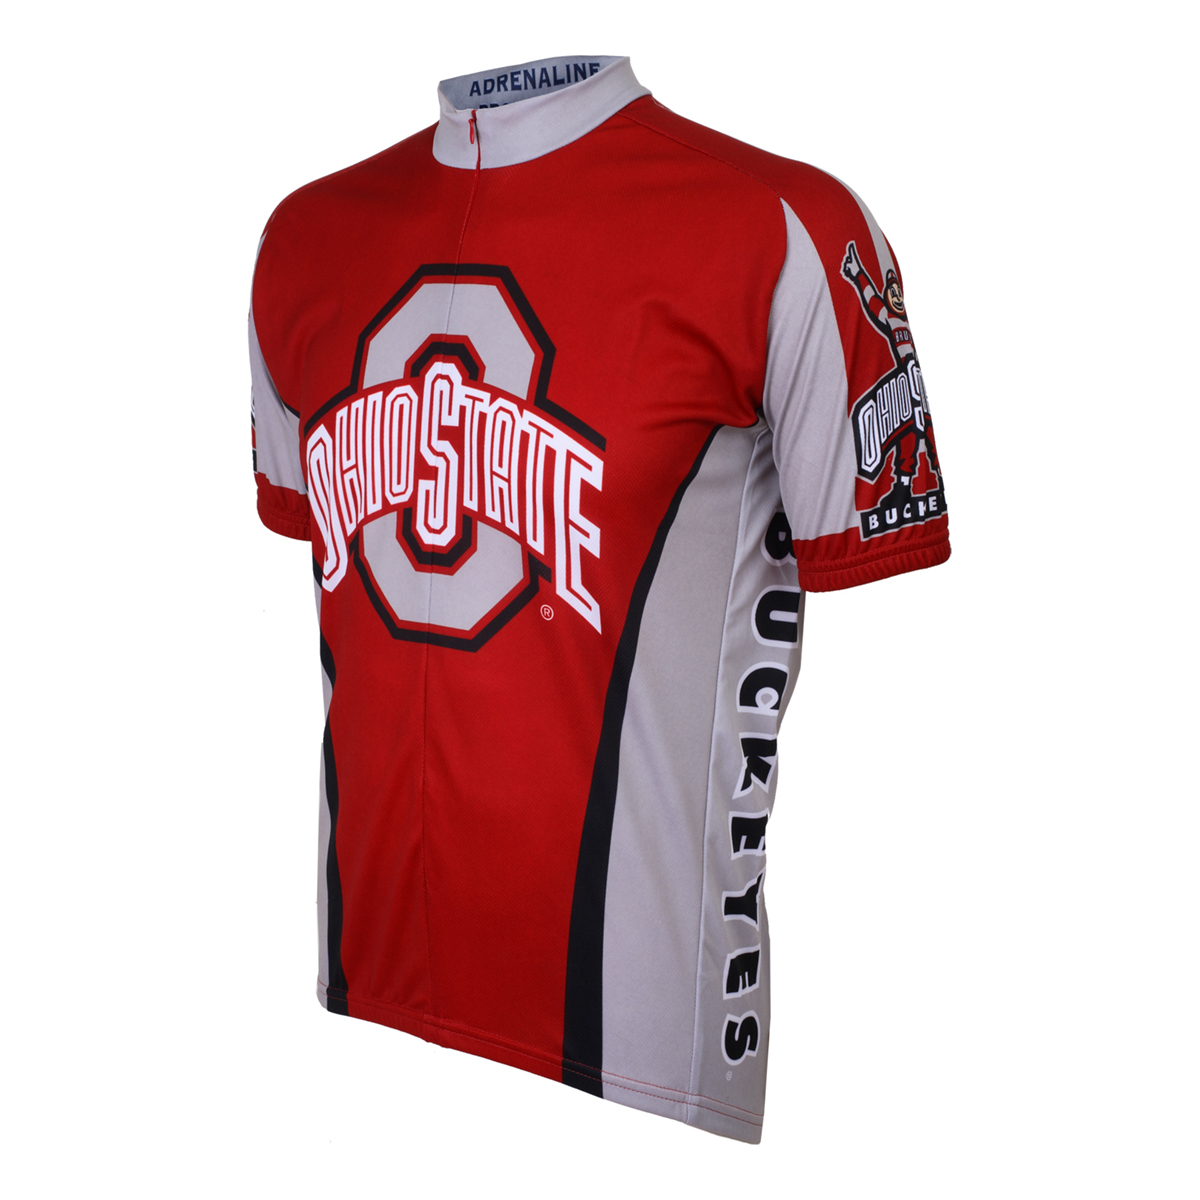 Adrenaline Promotions Ohio State Buckeyes Cycling Jersey